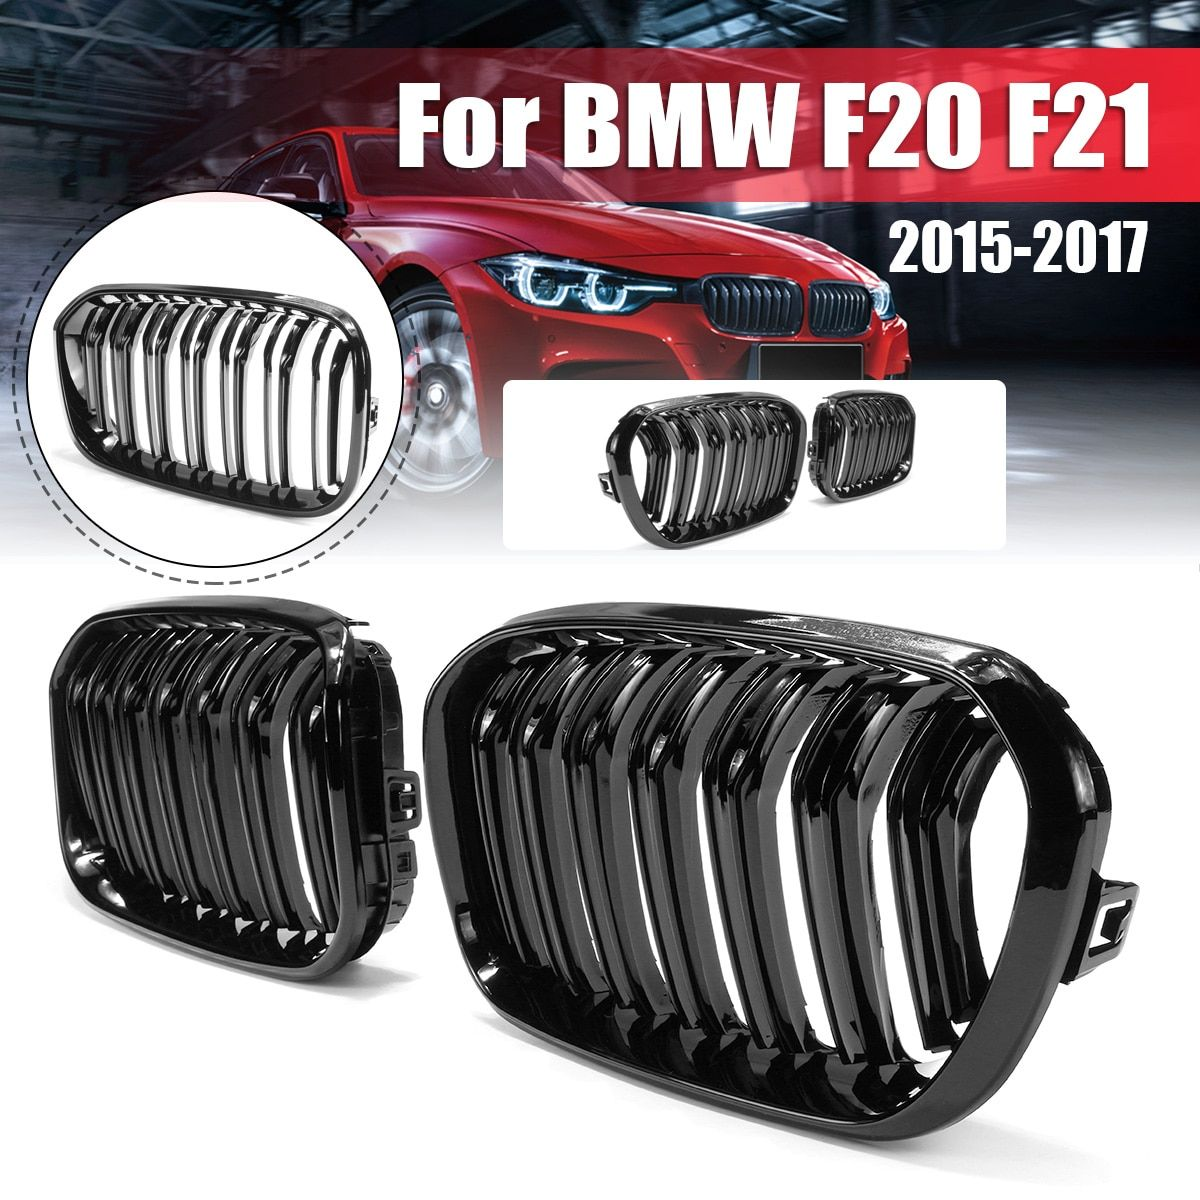 For BMW F20 F21 1 Series 2015 2016 2017 Pair Gloss Matt Black Double Slat Line M Color Front Racing Grill Kidney Grill Grille